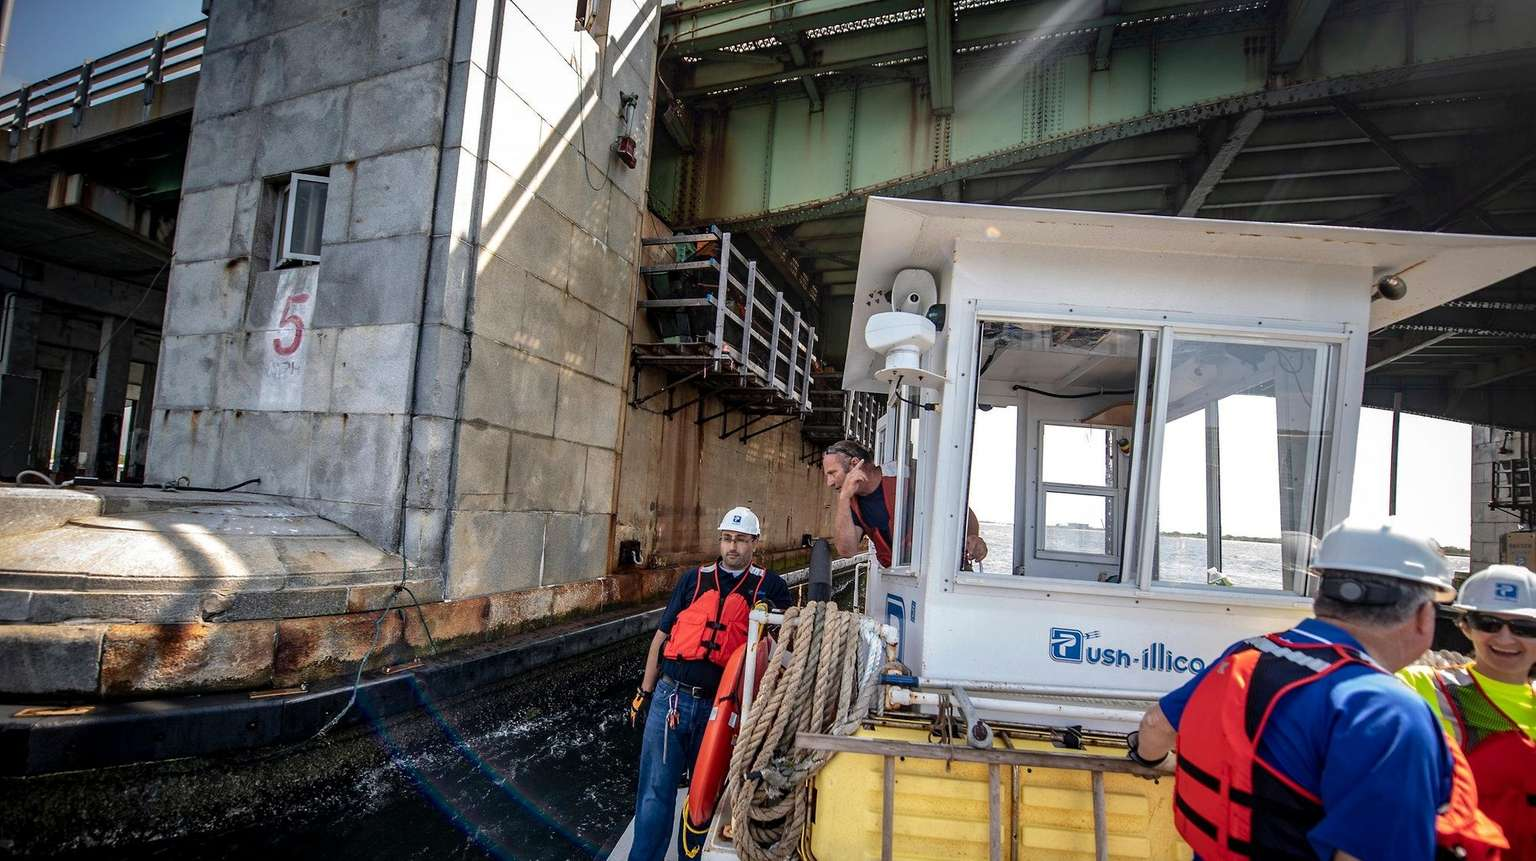 Posillico workers aboarda boat look over their drawbridgeproject in Wantagh Aug. 22, 2018.